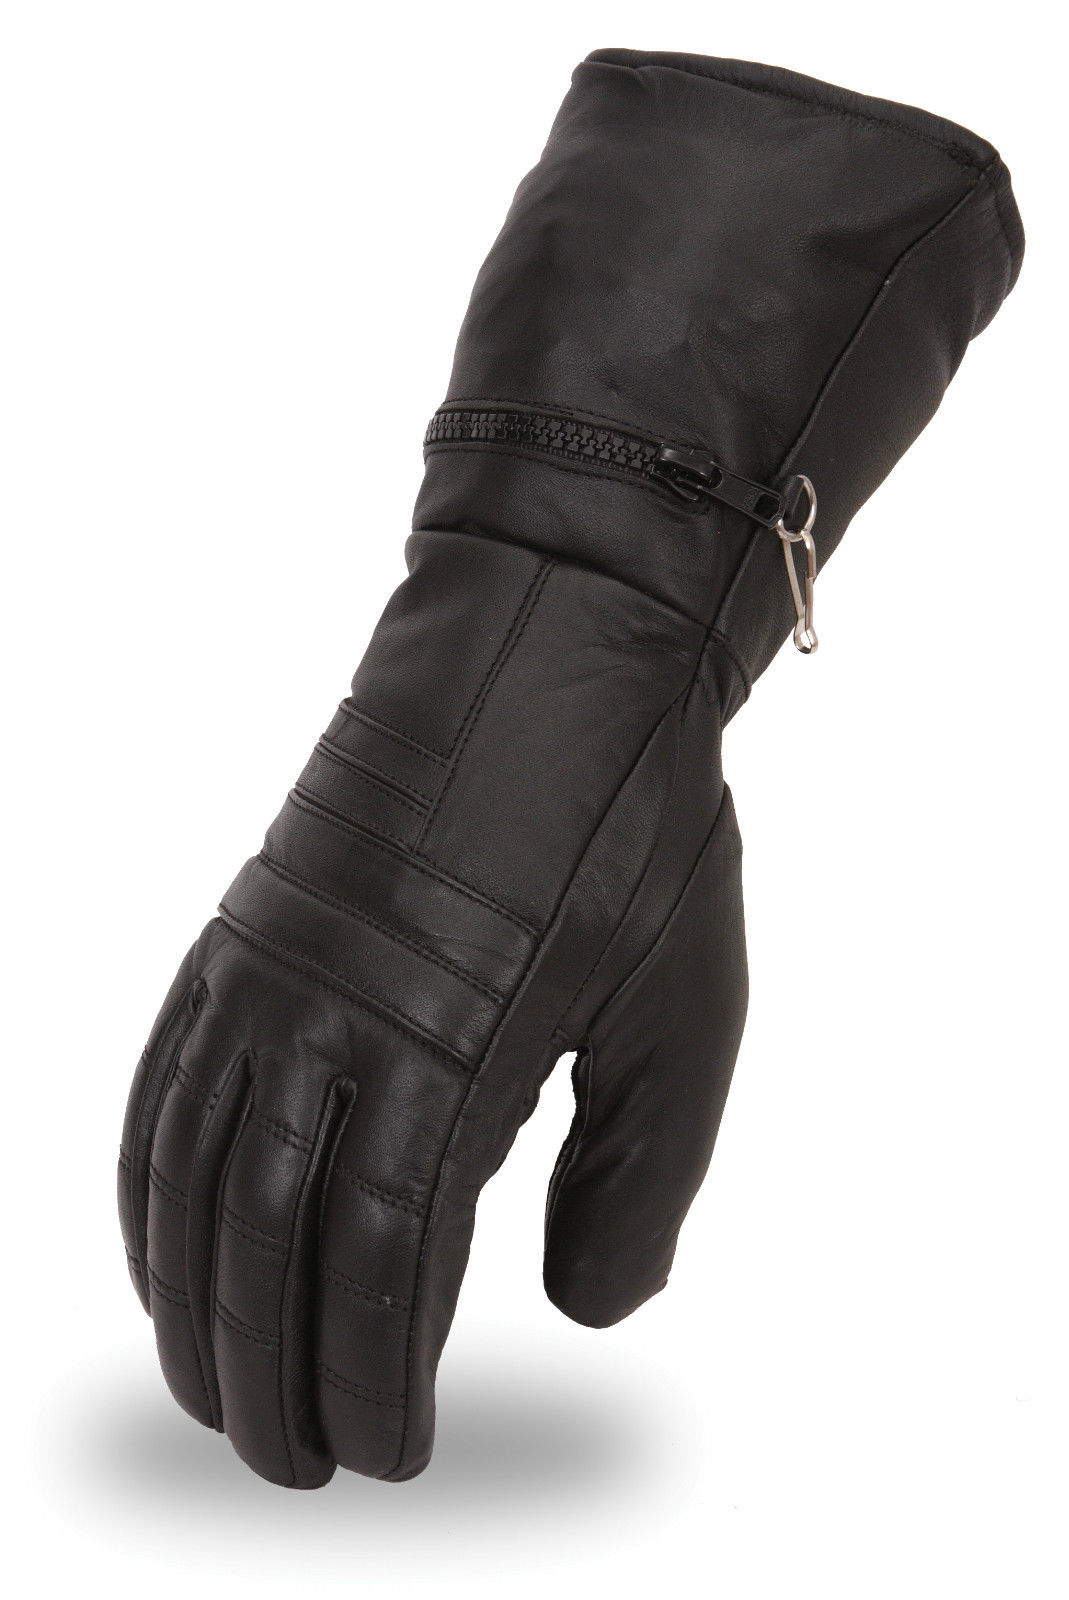 Insulated leather motorcycle gloves - Responsive Image Responsive Image